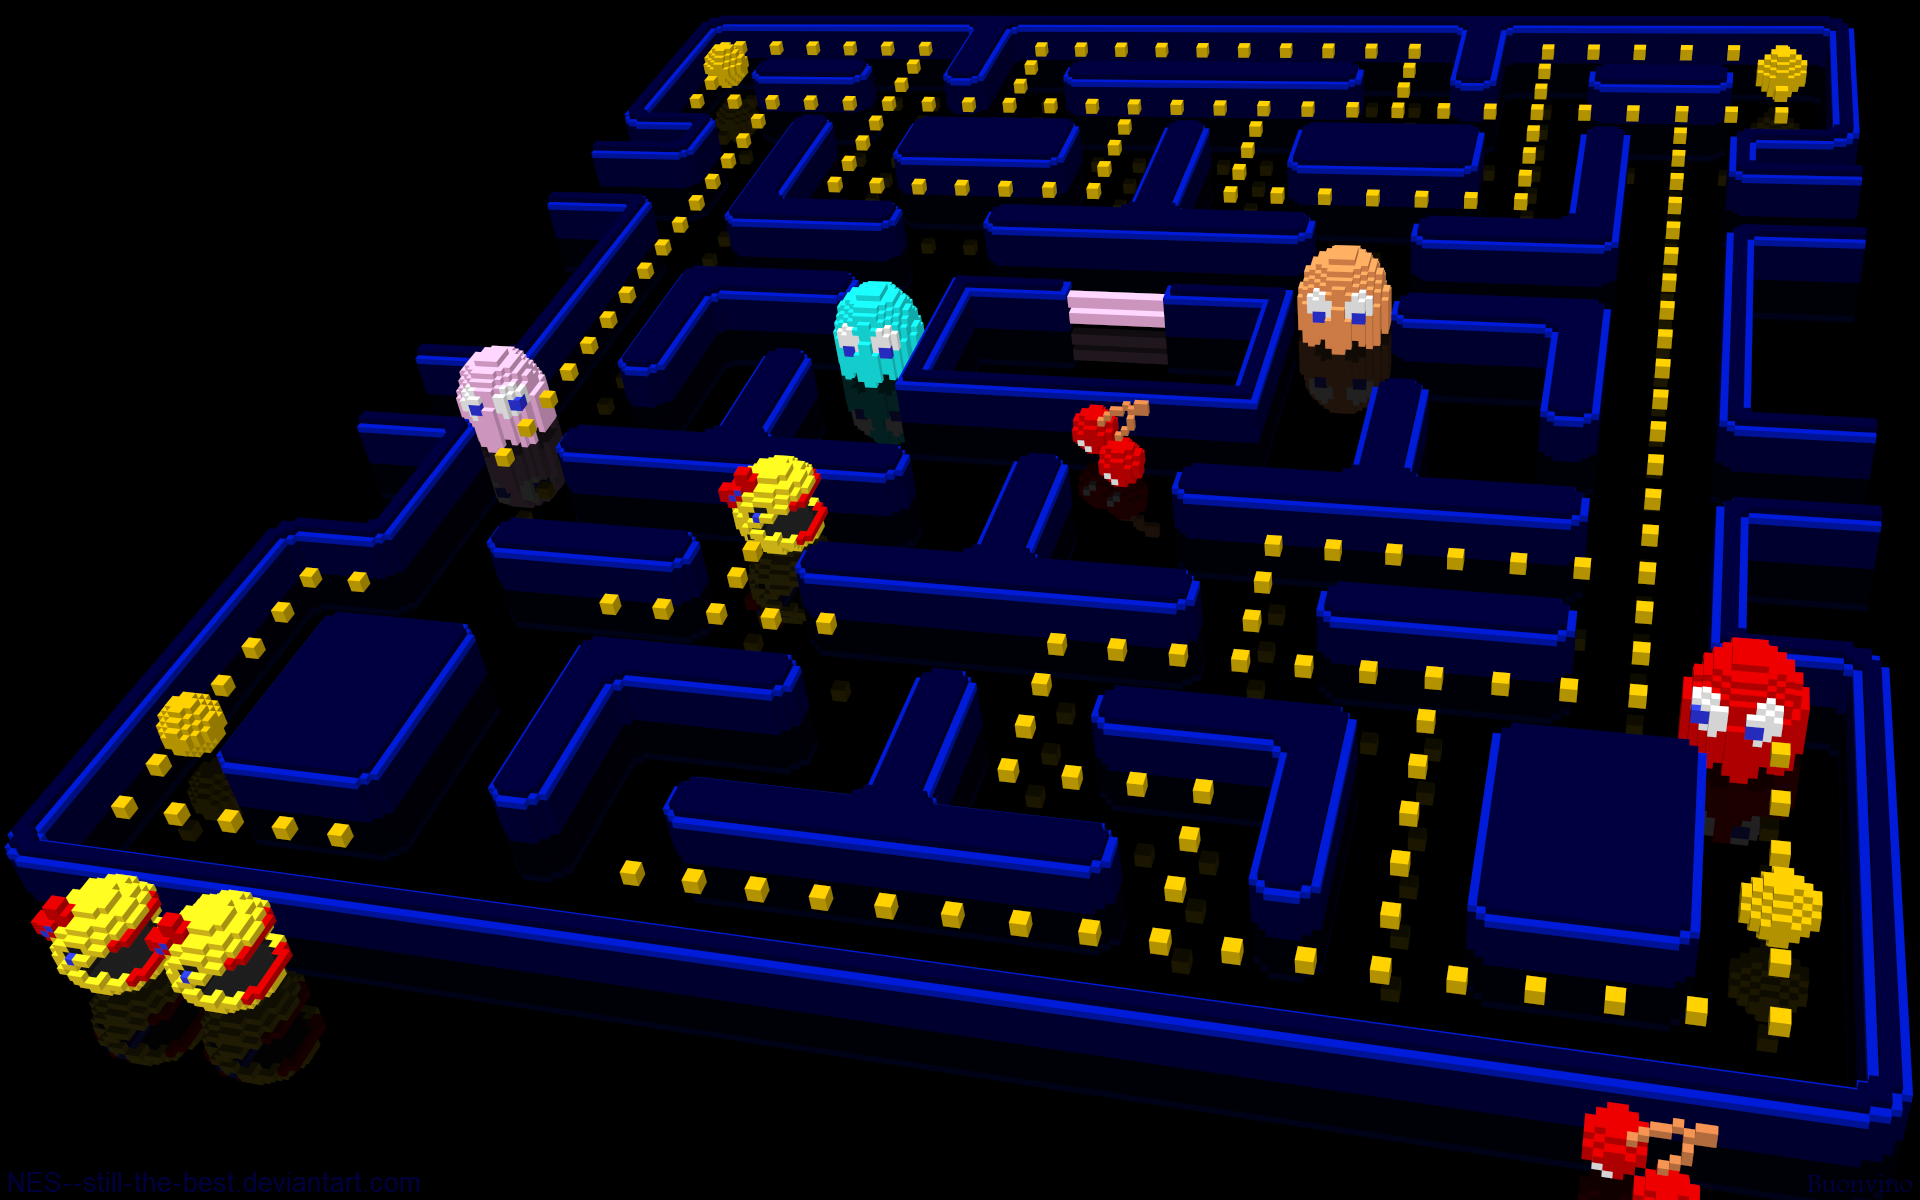 Pacman HQFX Live Wallpaper - DSC2727 Screenshot